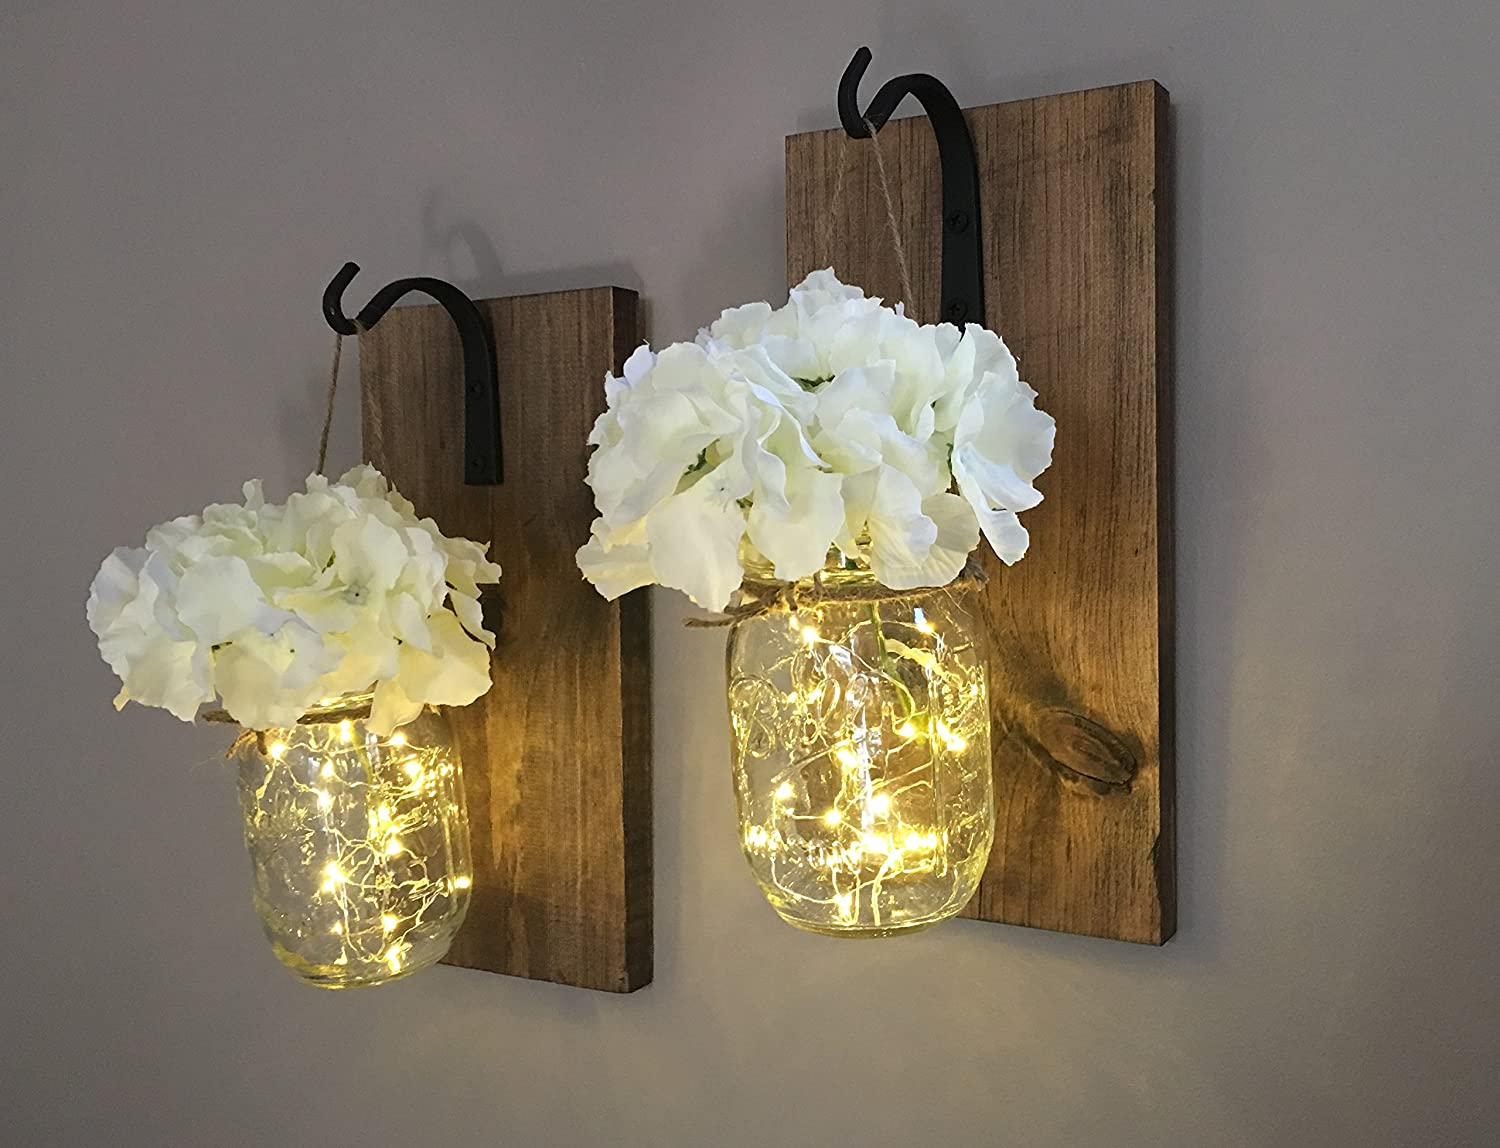 Rustic wall decor ideas to inspire recreate for Lights for home decor